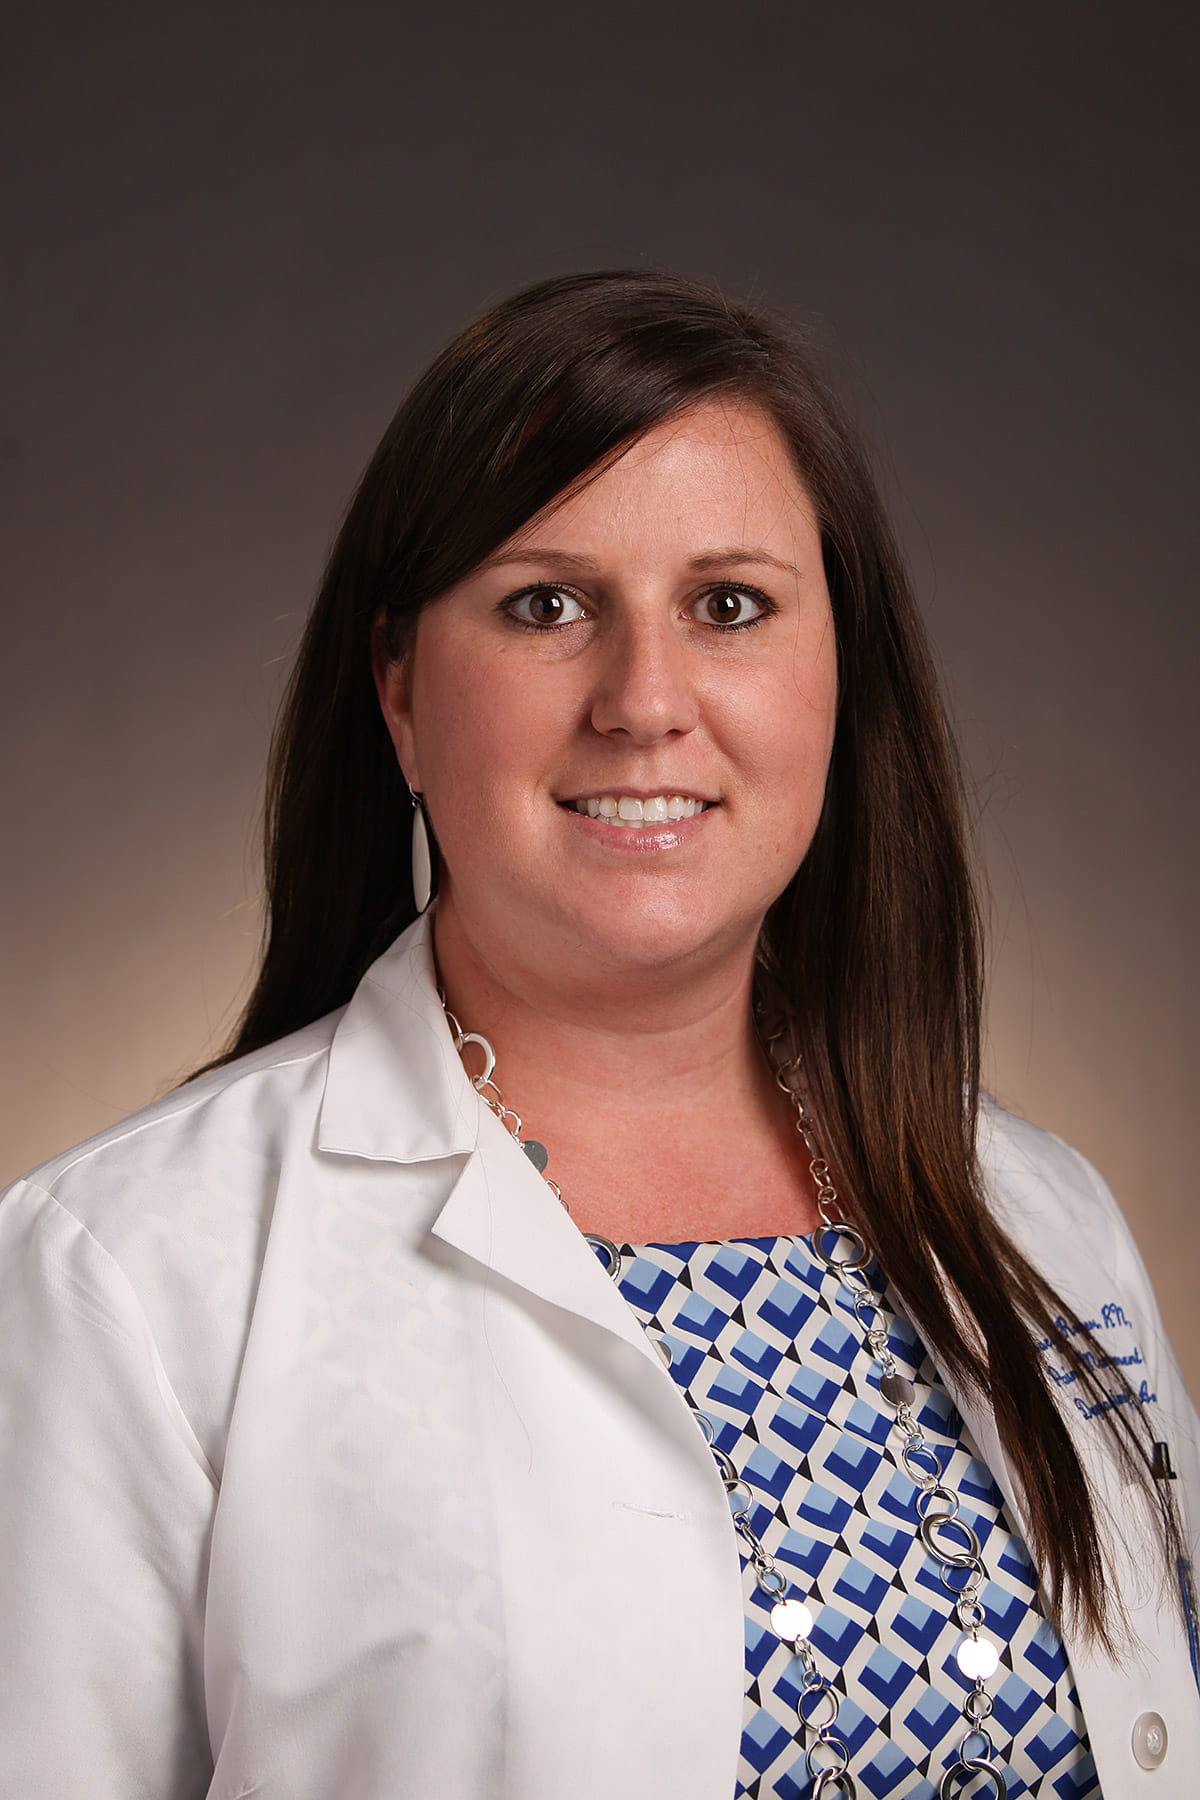 Tracy N. Rogers, MSN, APRN, CNP